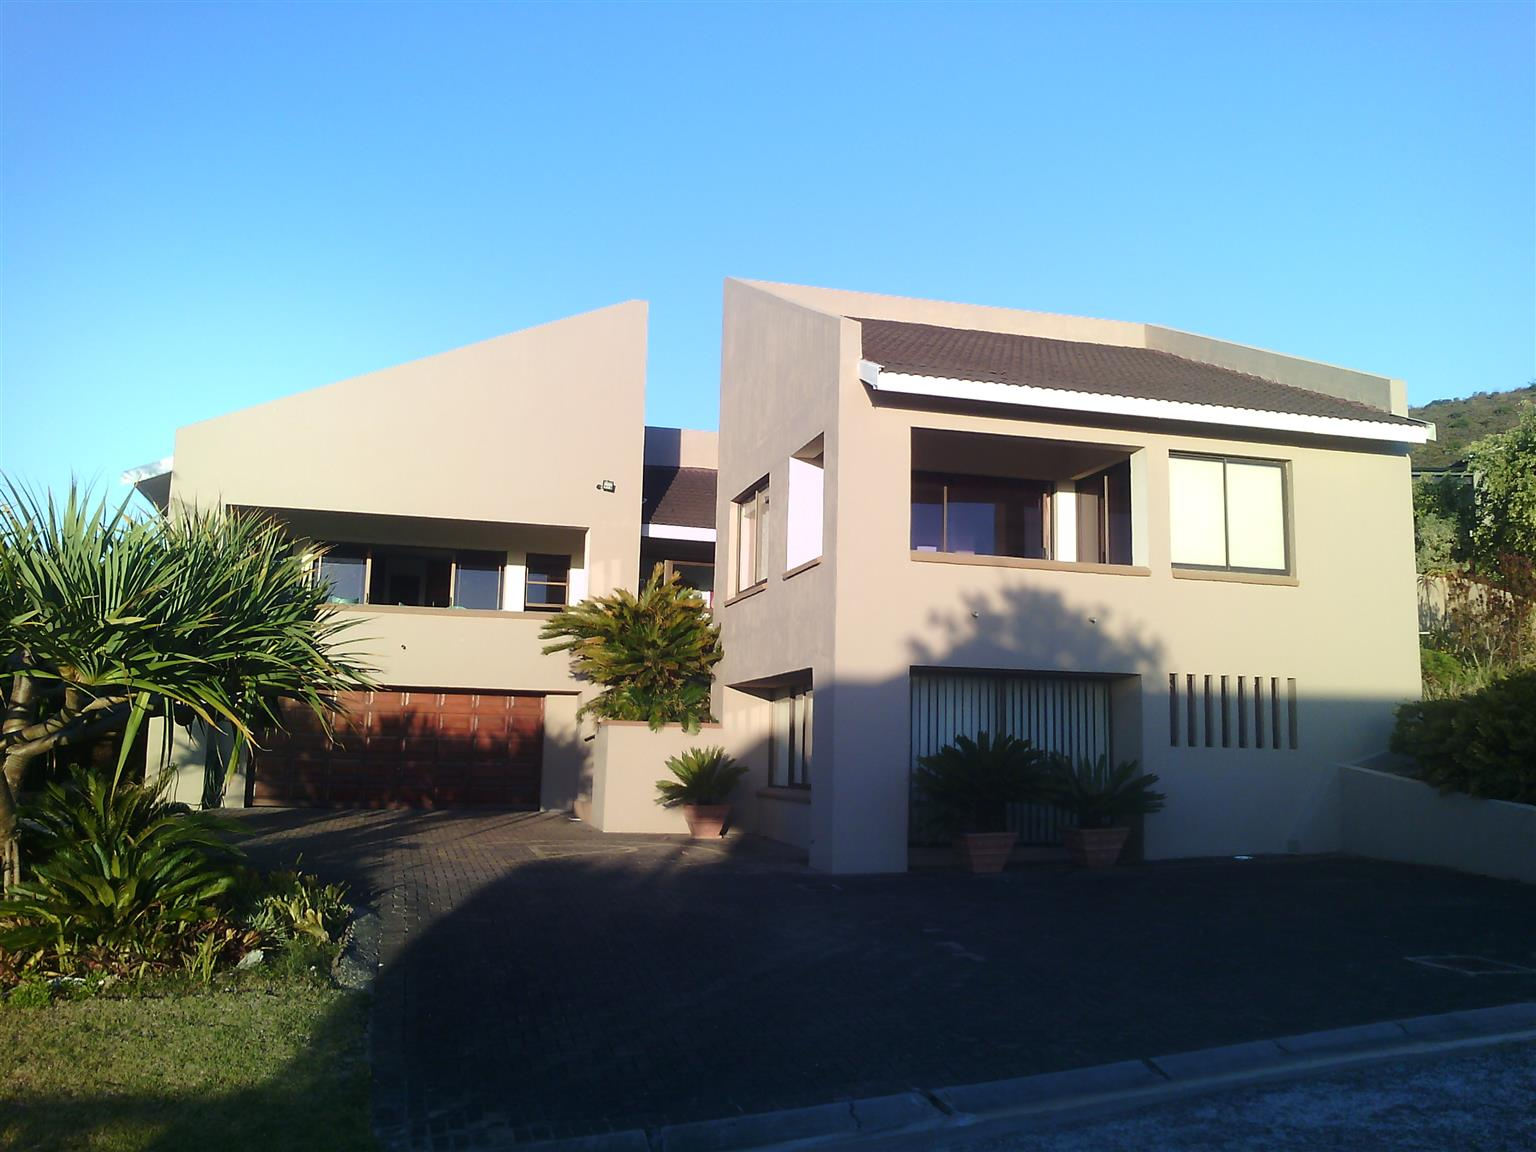 Spacious, comfortable home in cul de sac with views over the lagoon and golf course